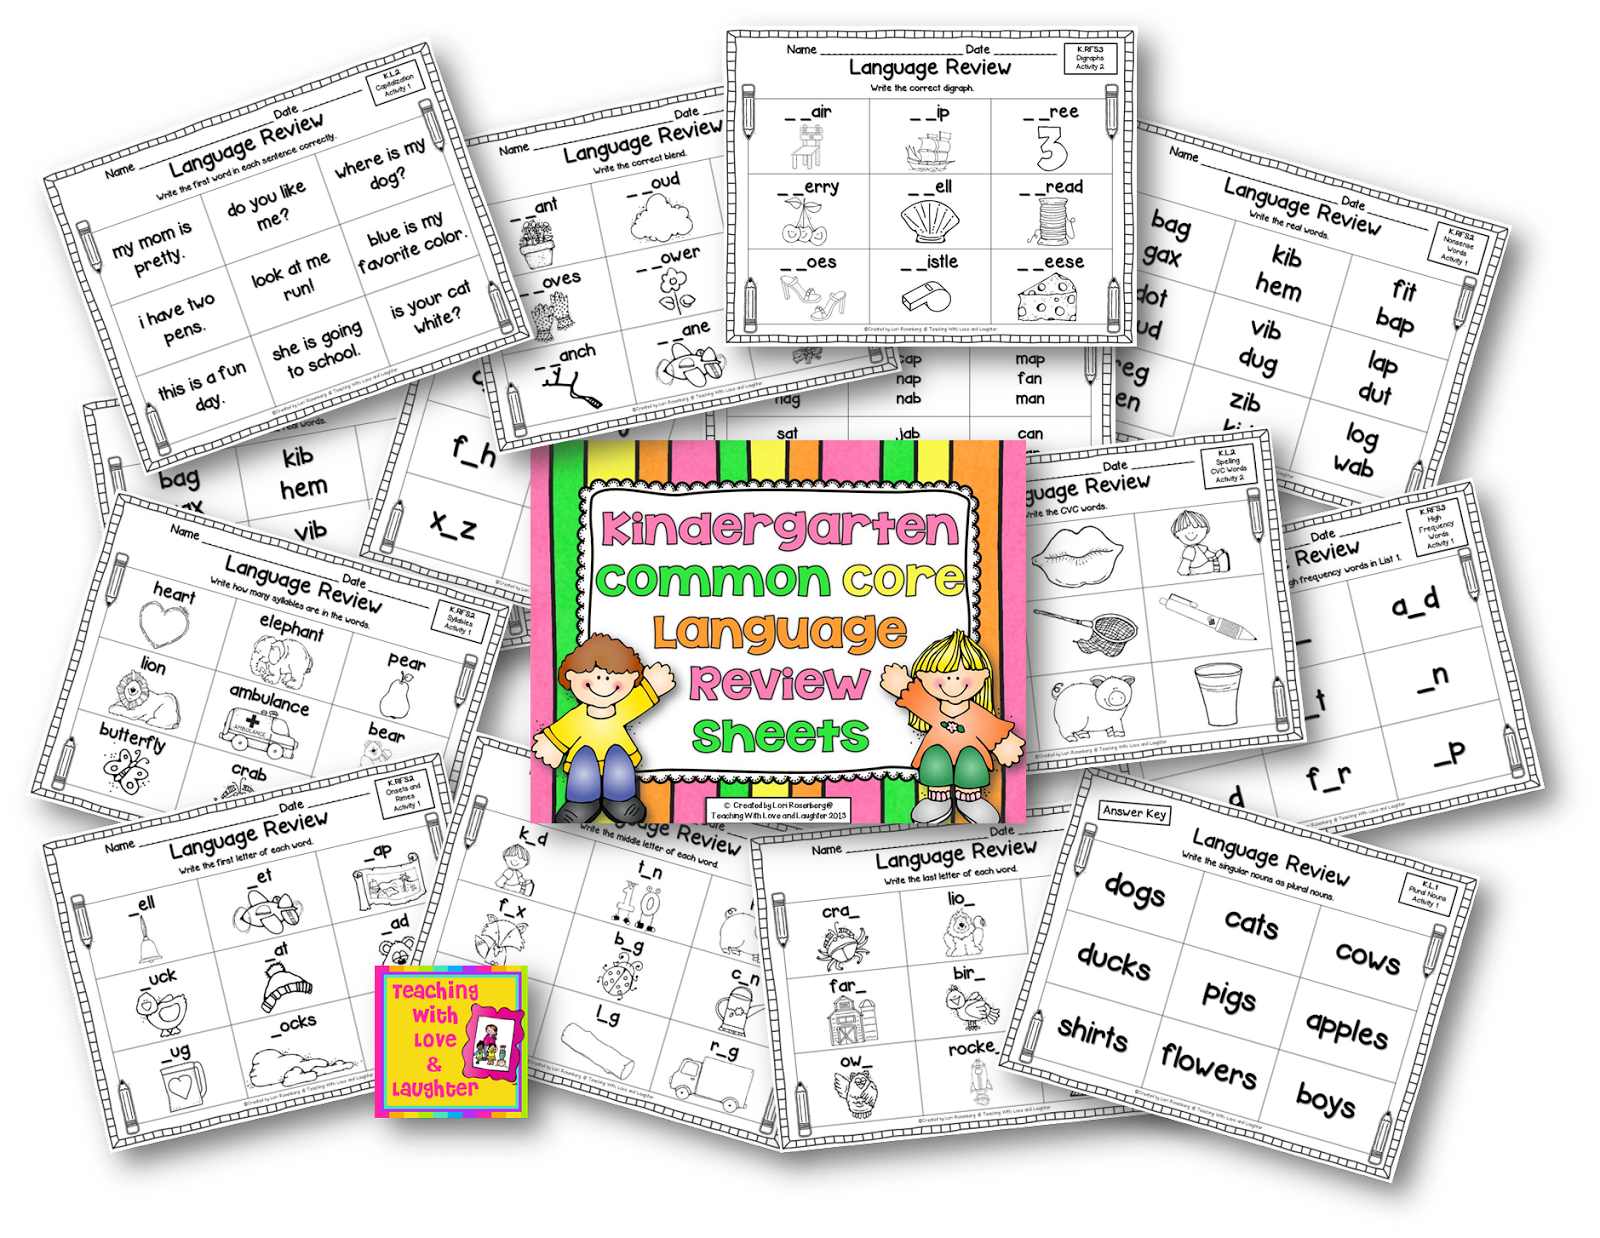 Teaching With Love And Laughter Kindergarten Common Core Language Review Sheets